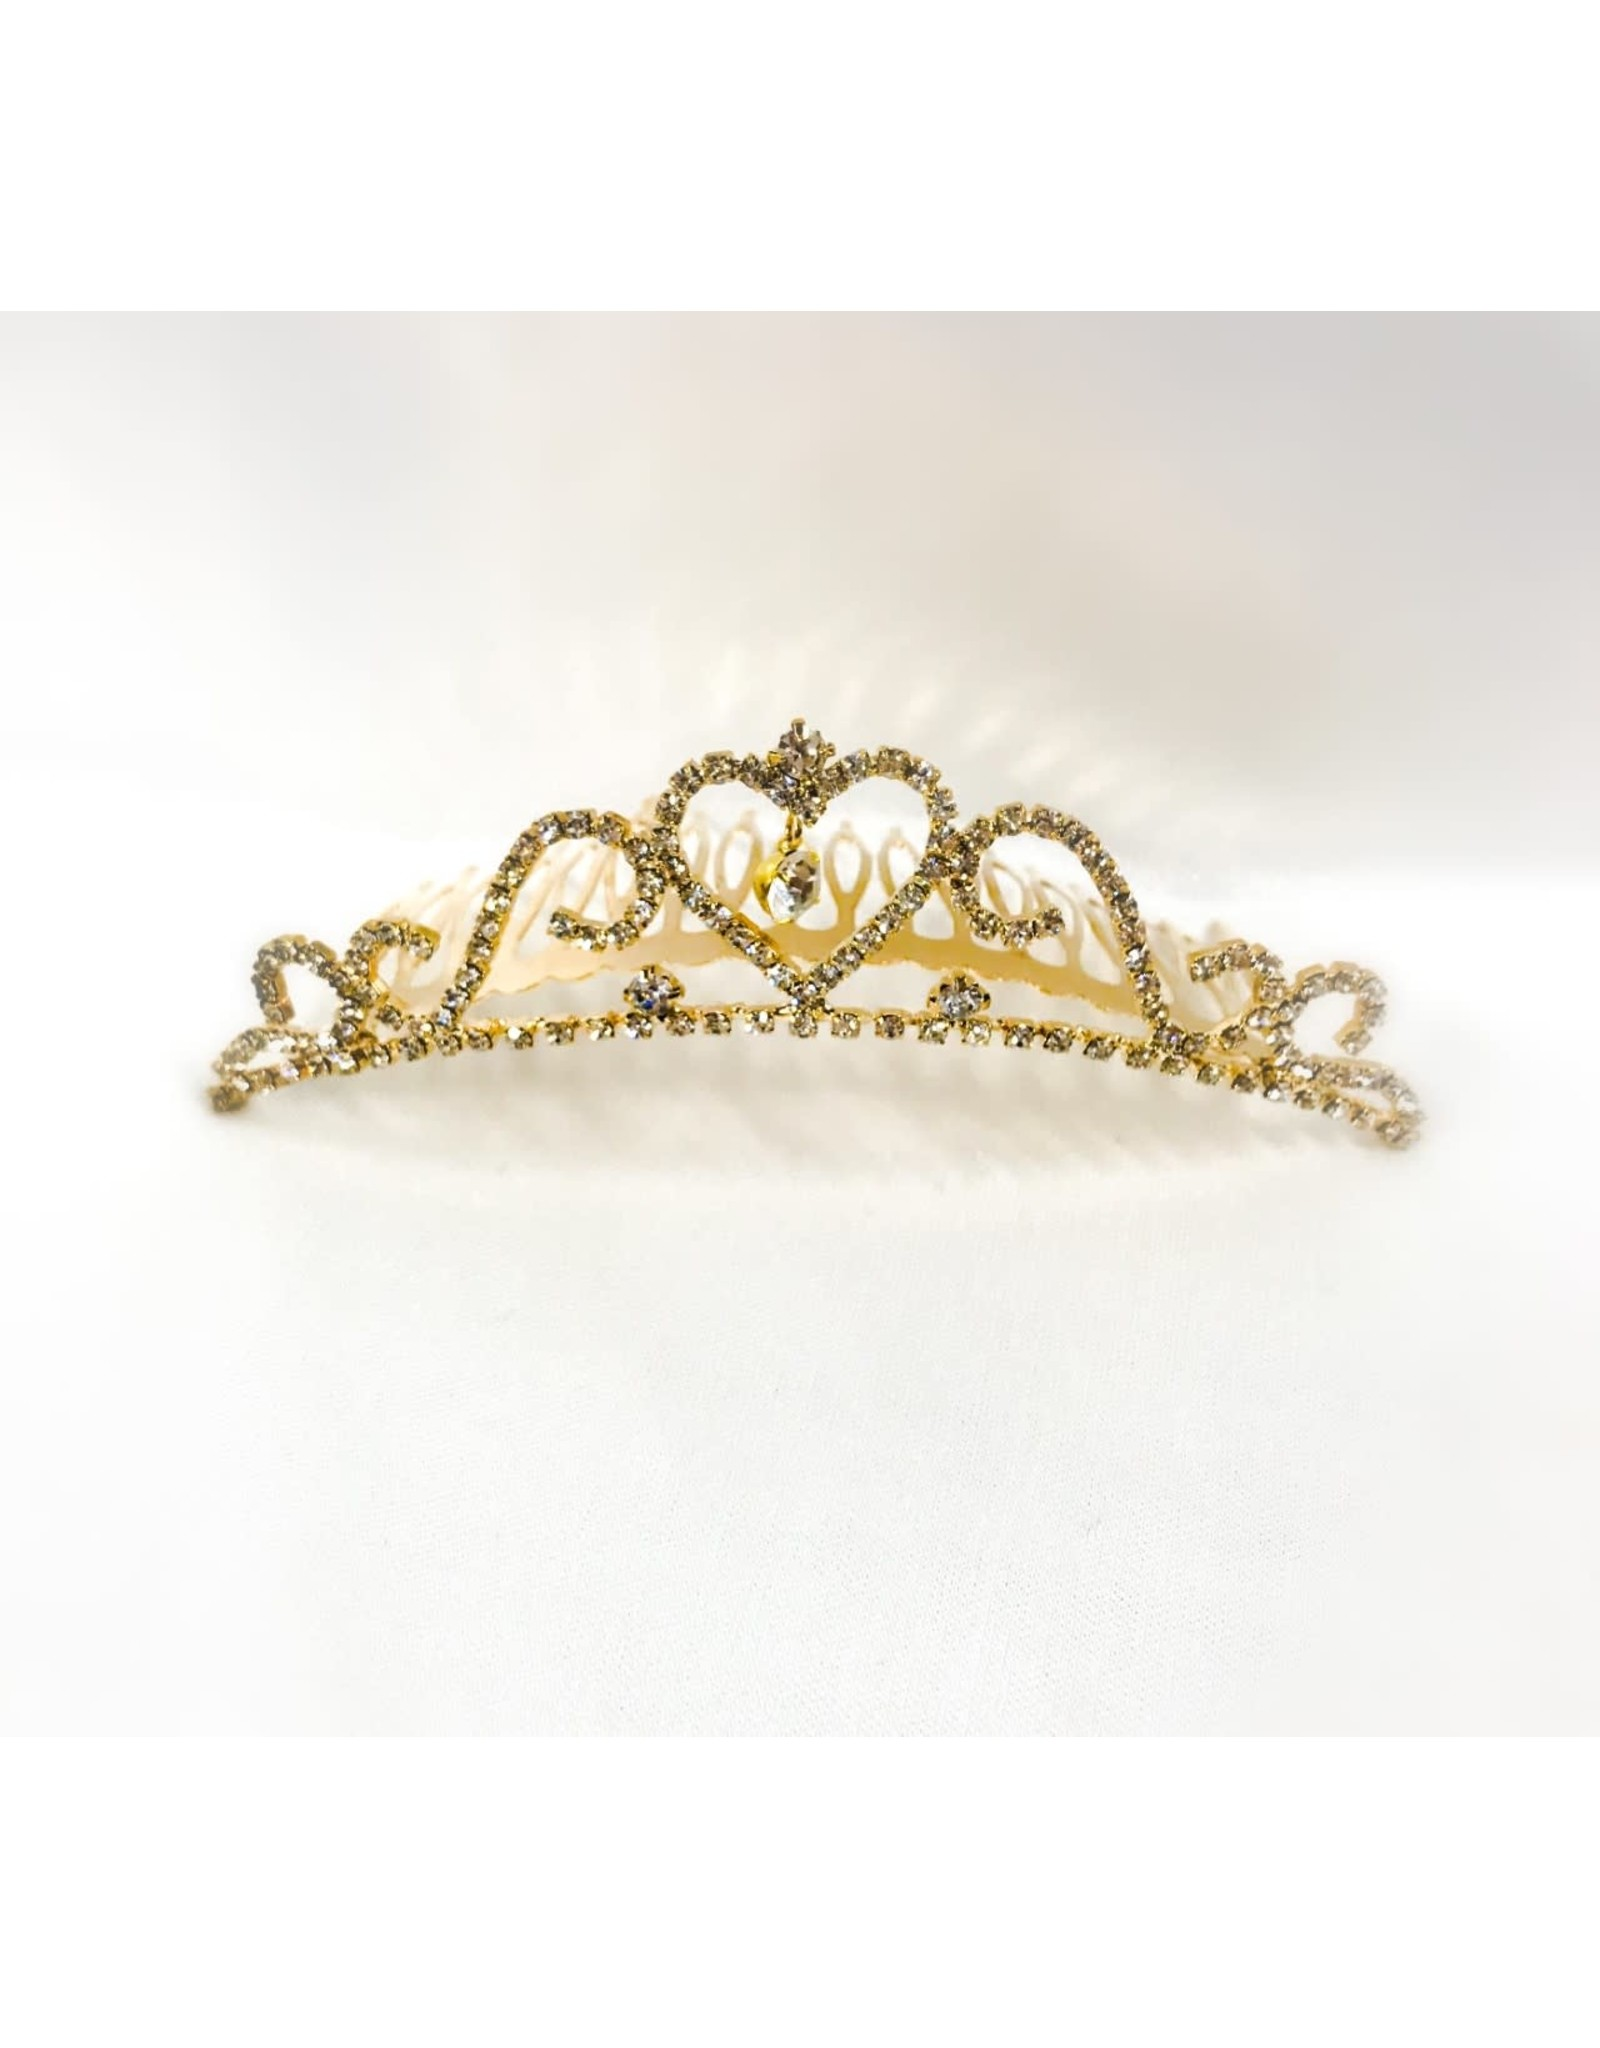 Mimy Design Gold Tiara With Glass Stones